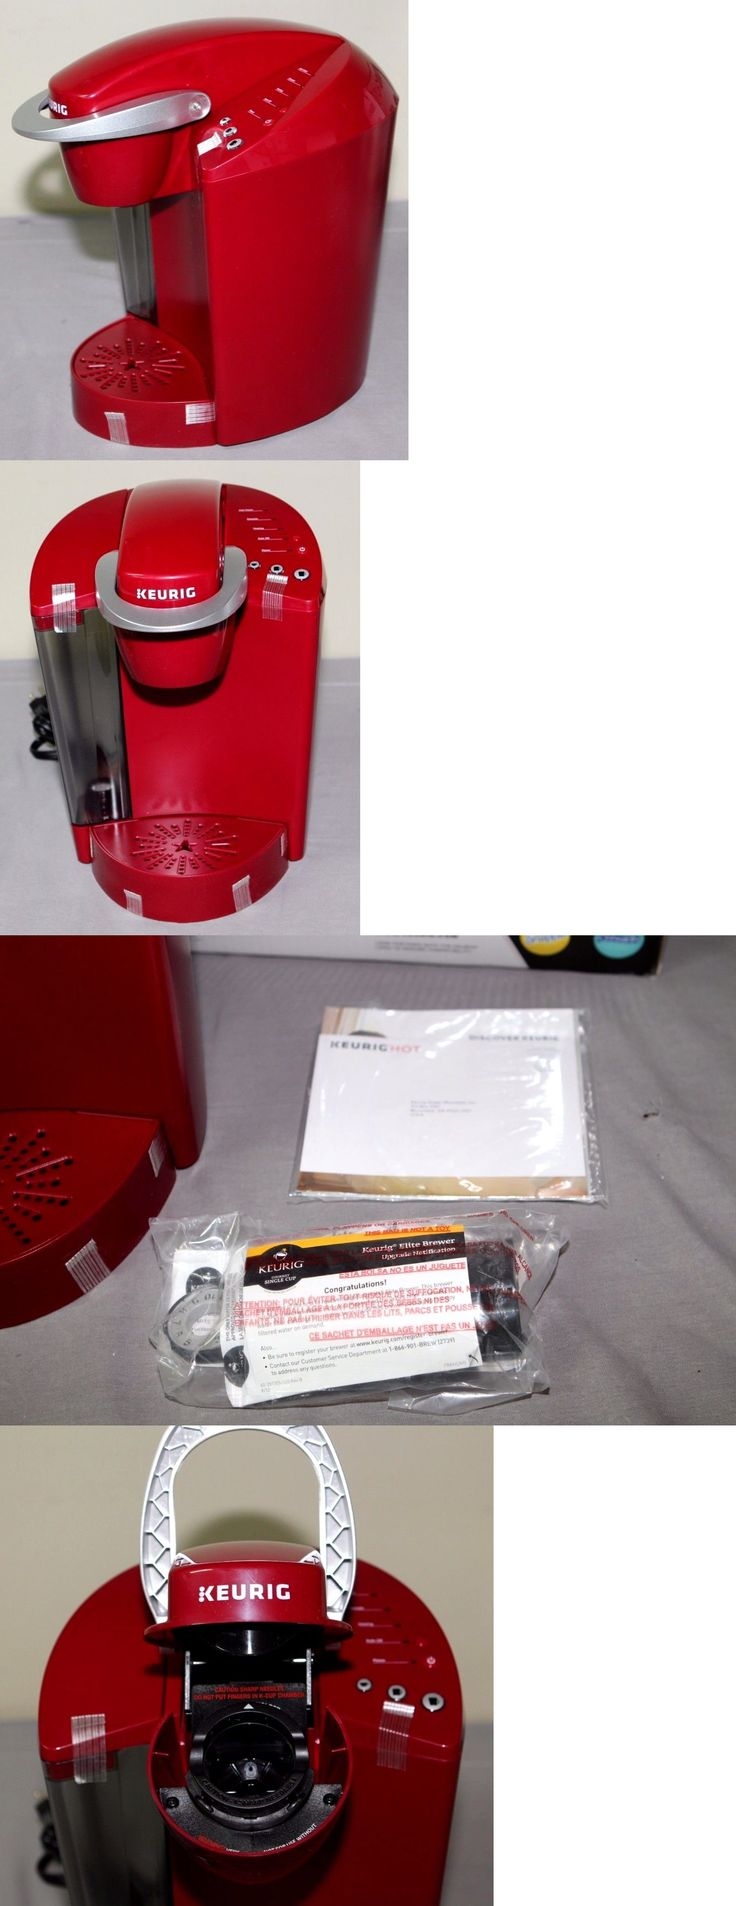 Single Serve Brewers 156775: Keurig K40 Single Serve Coffee Maker Brewing System -> BUY IT NOW ONLY: $49.95 on eBay!